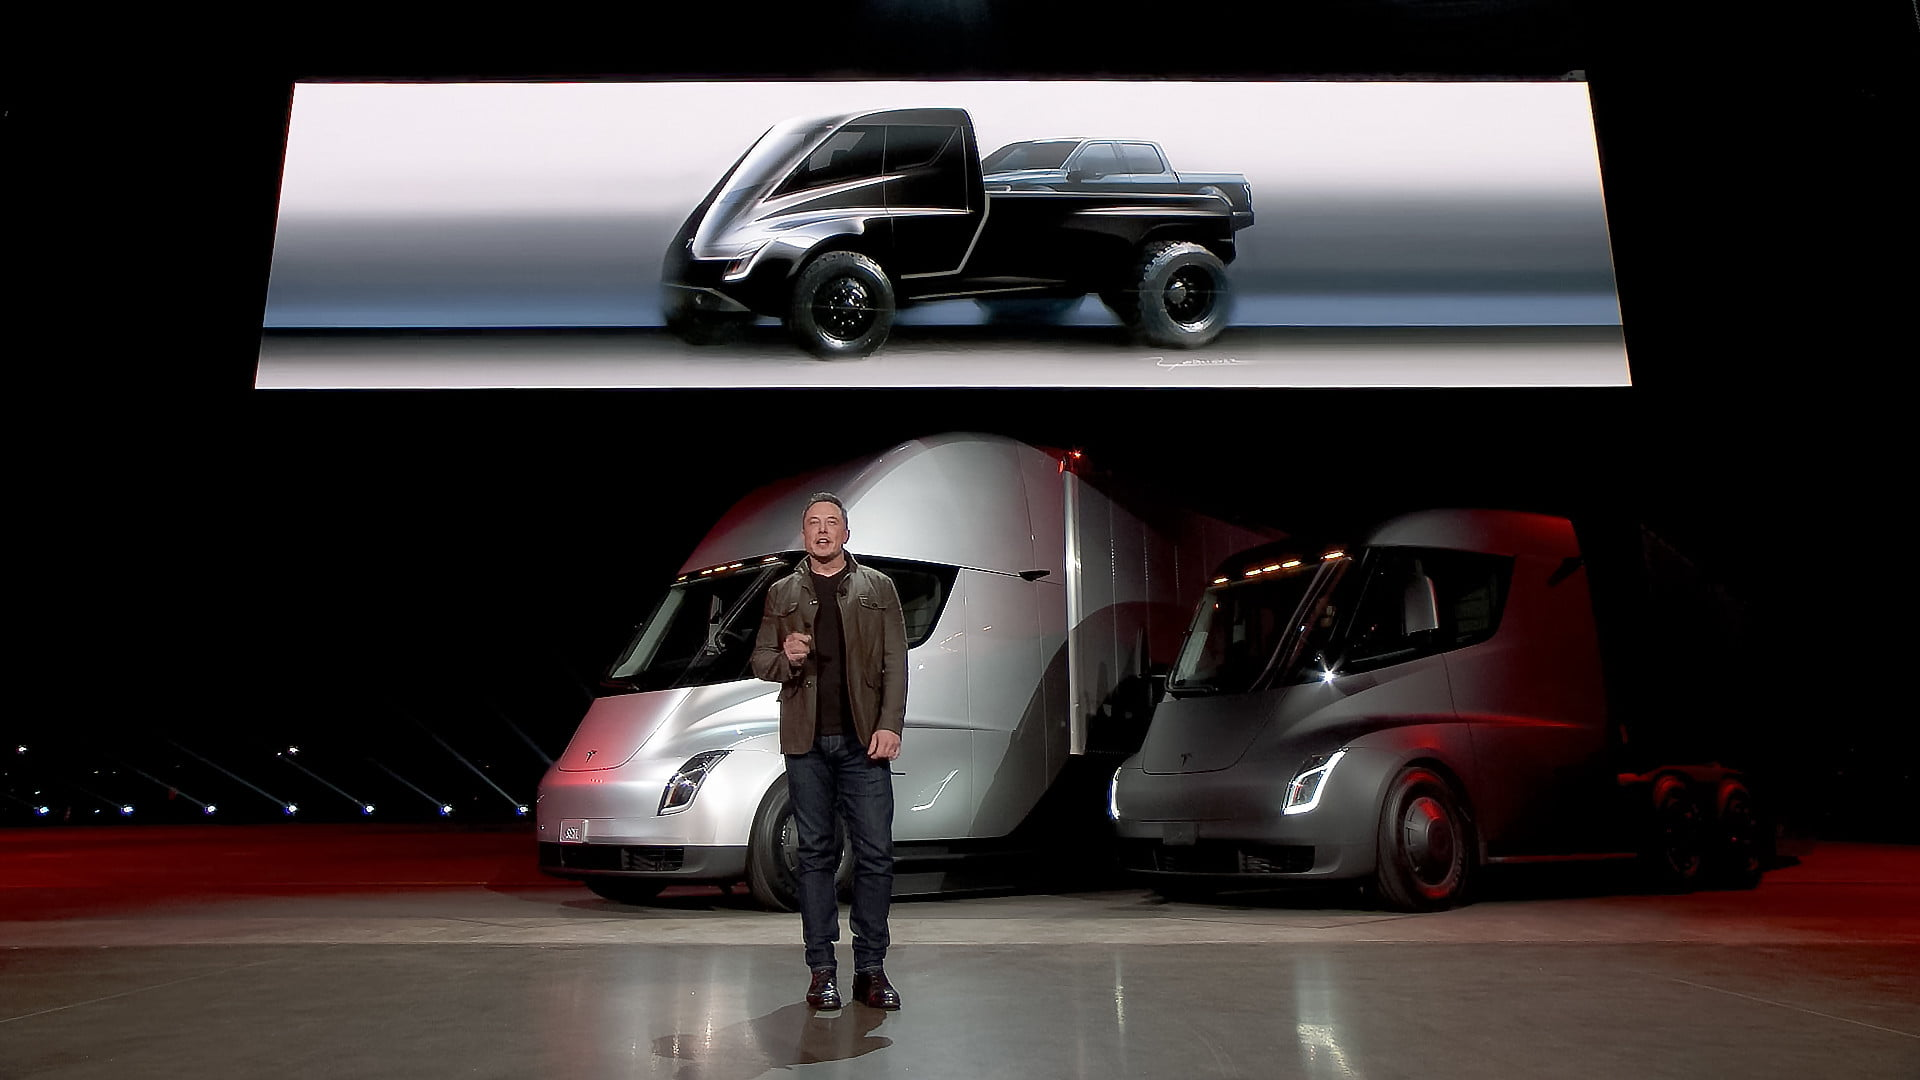 How to watch Elon Musk unveil the Tesla Cybertruck, a new electric pickup truck